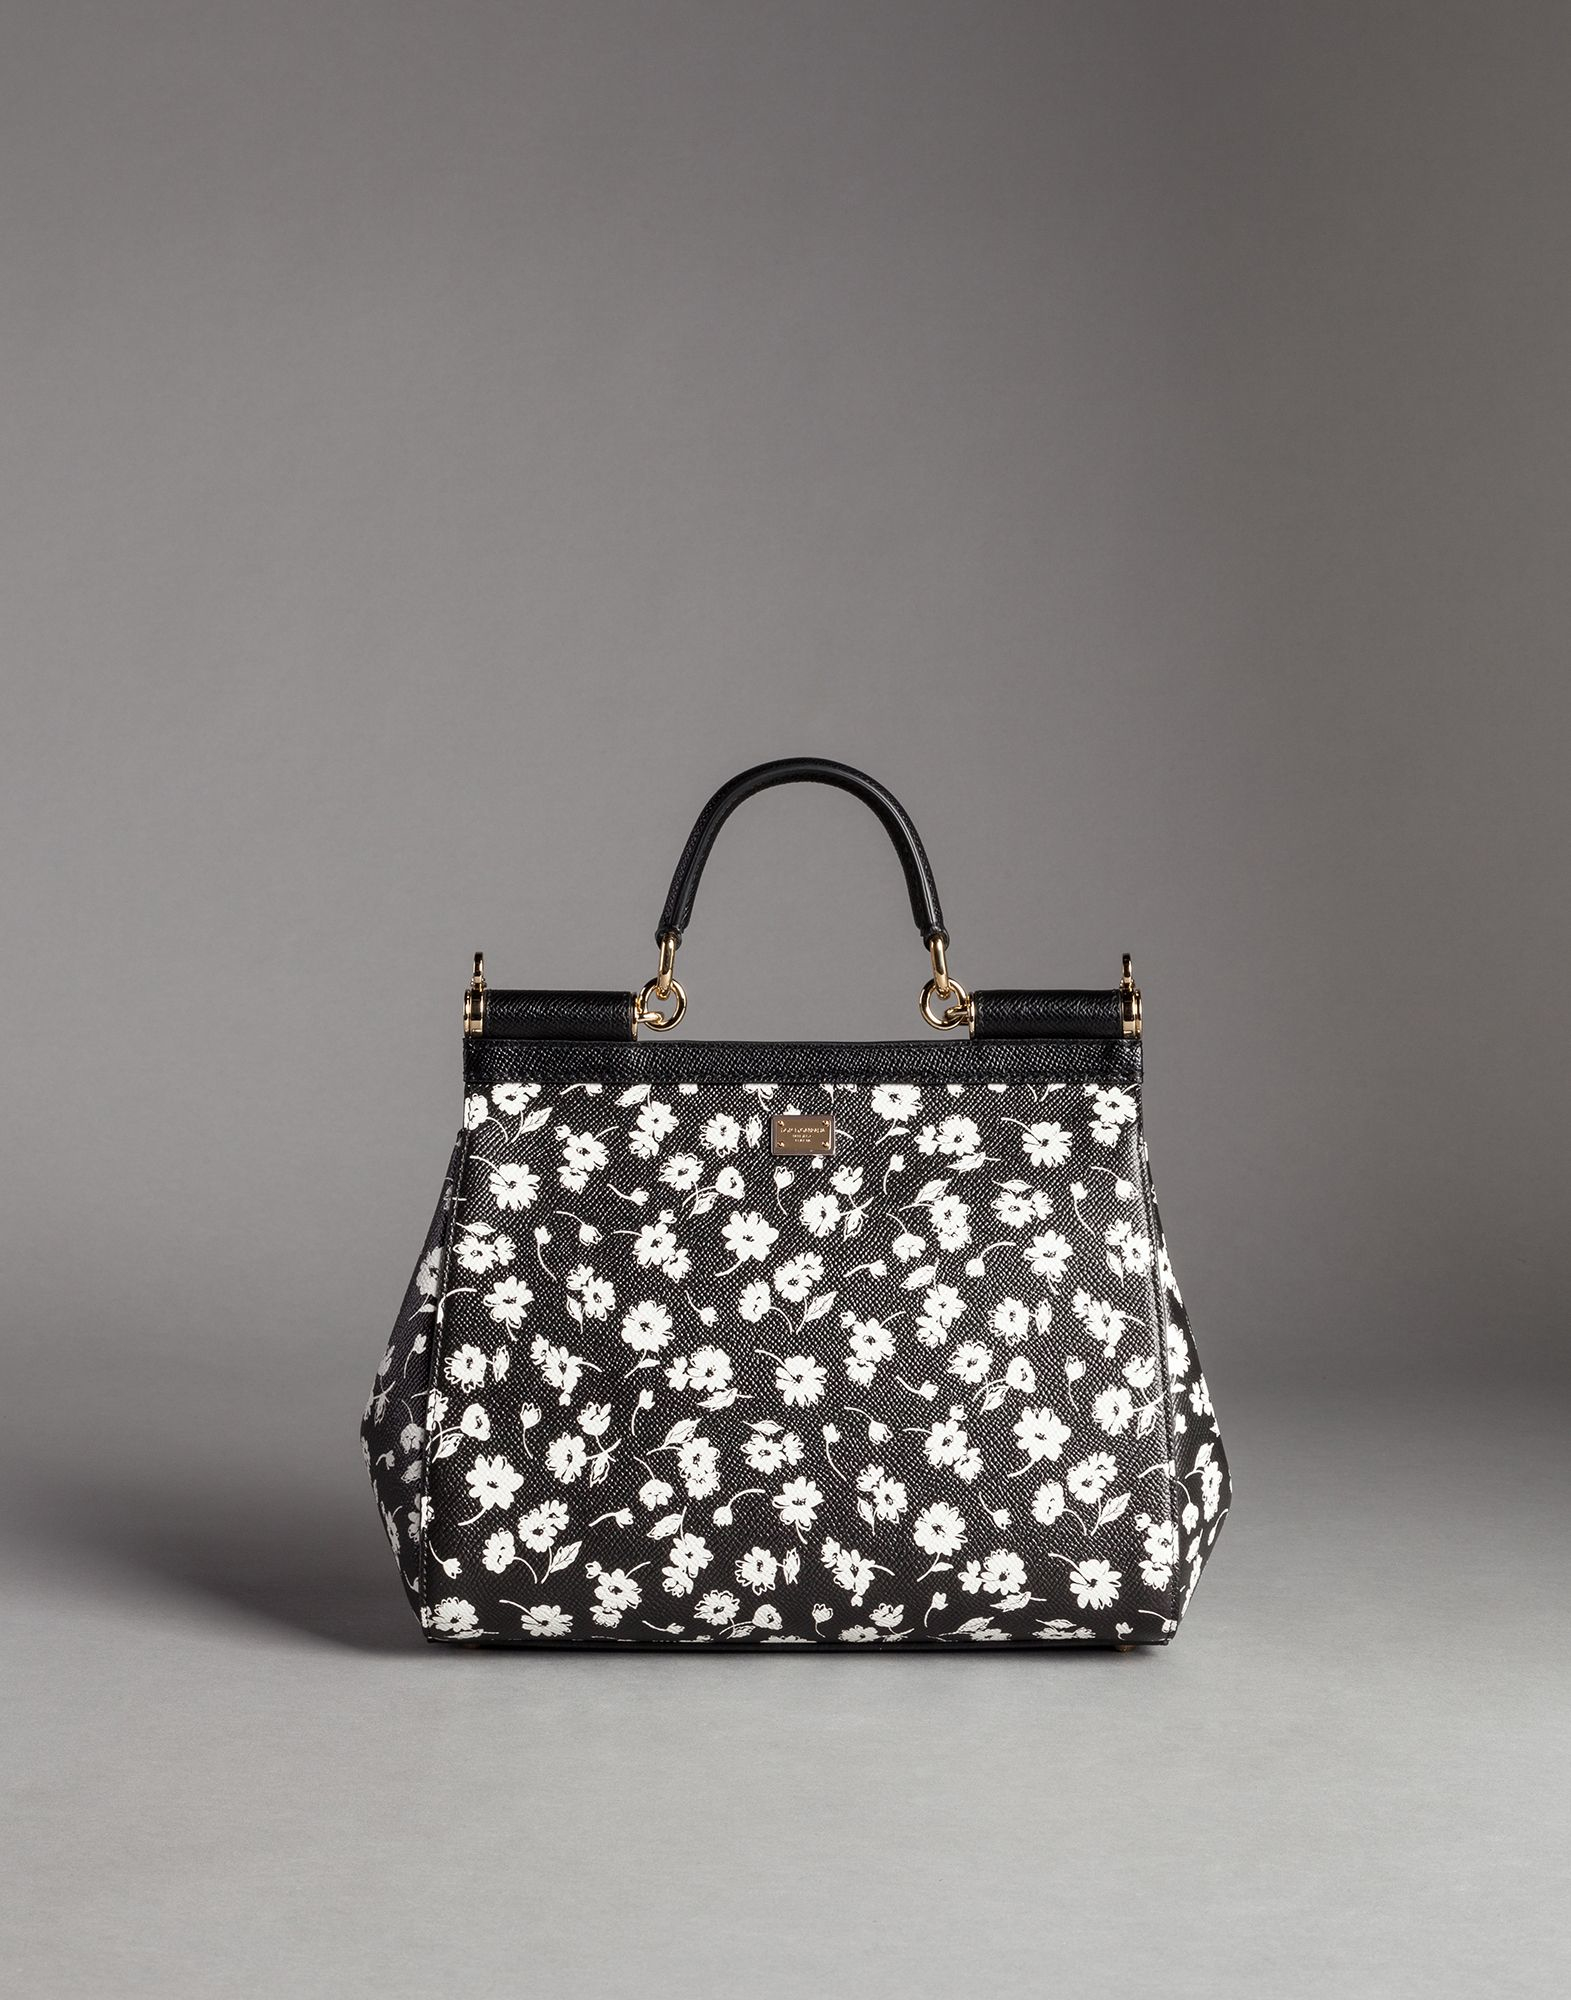 5610ed22d990 Lyst - Dolce   Gabbana Sicily Medium Floral-Print Tote in Black